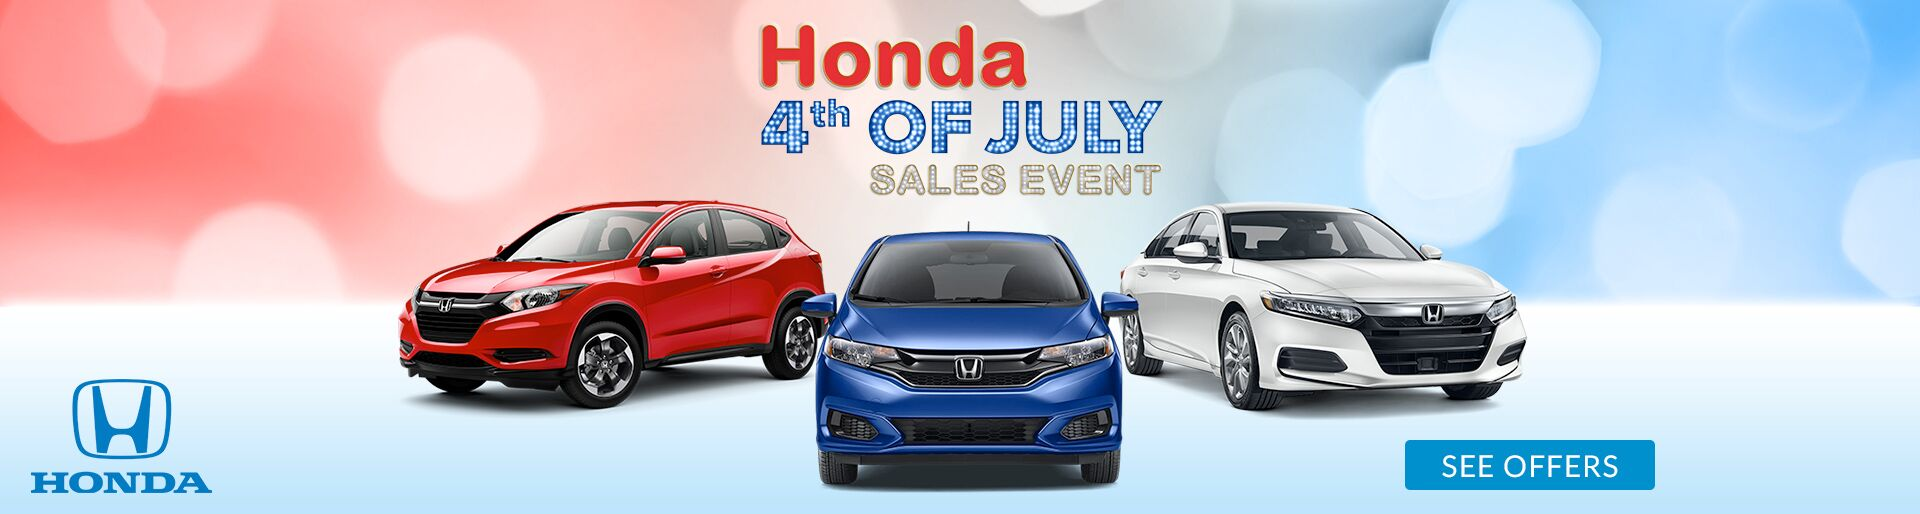 Honda dealership chattanooga tn used cars honda of cleveland for Honda dealer cleveland